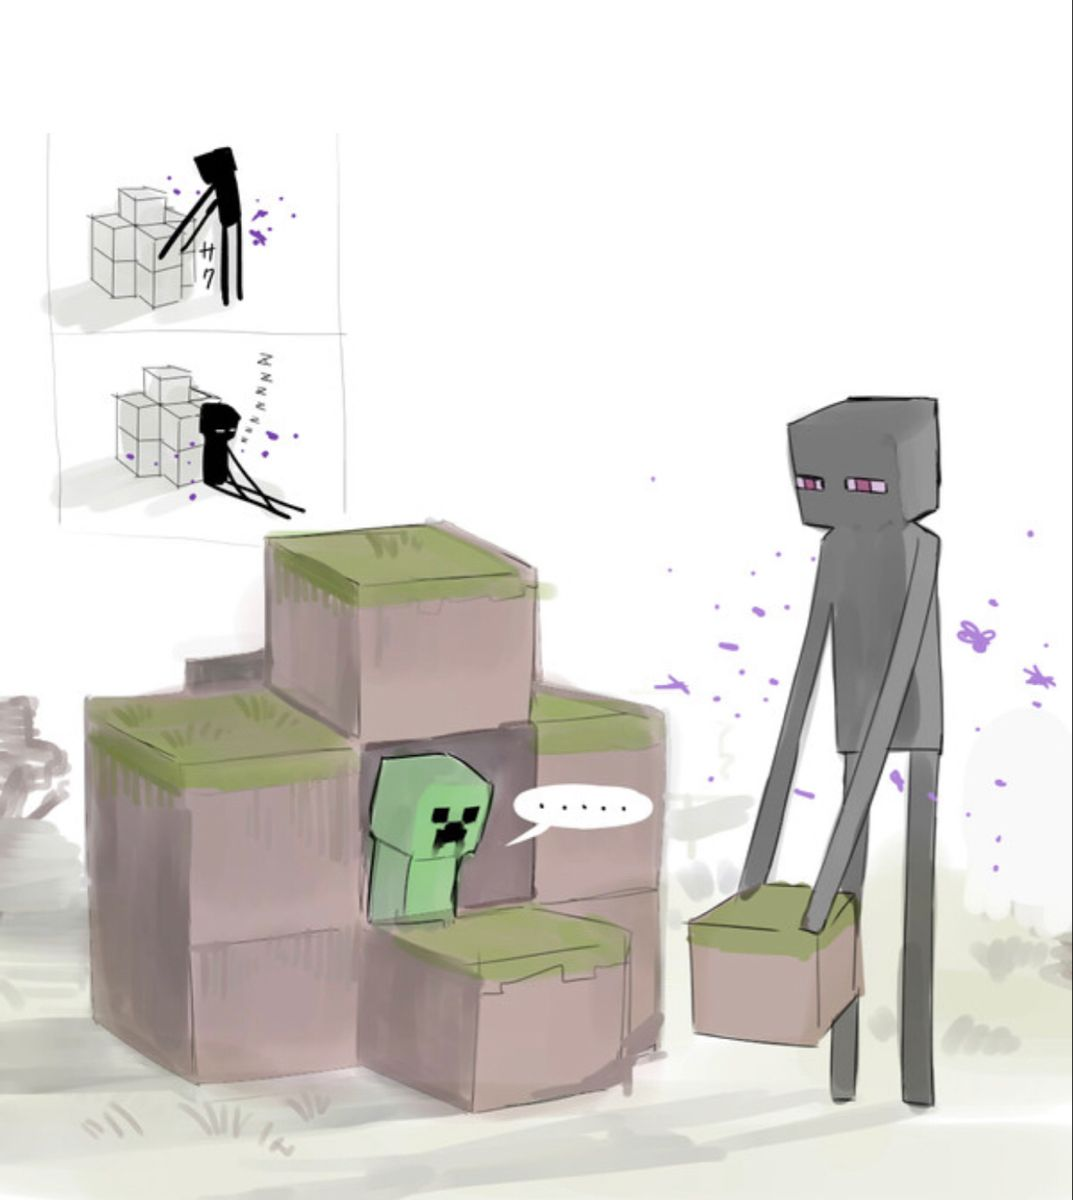 I will build your house  Minecraft drawings, Minecraft art